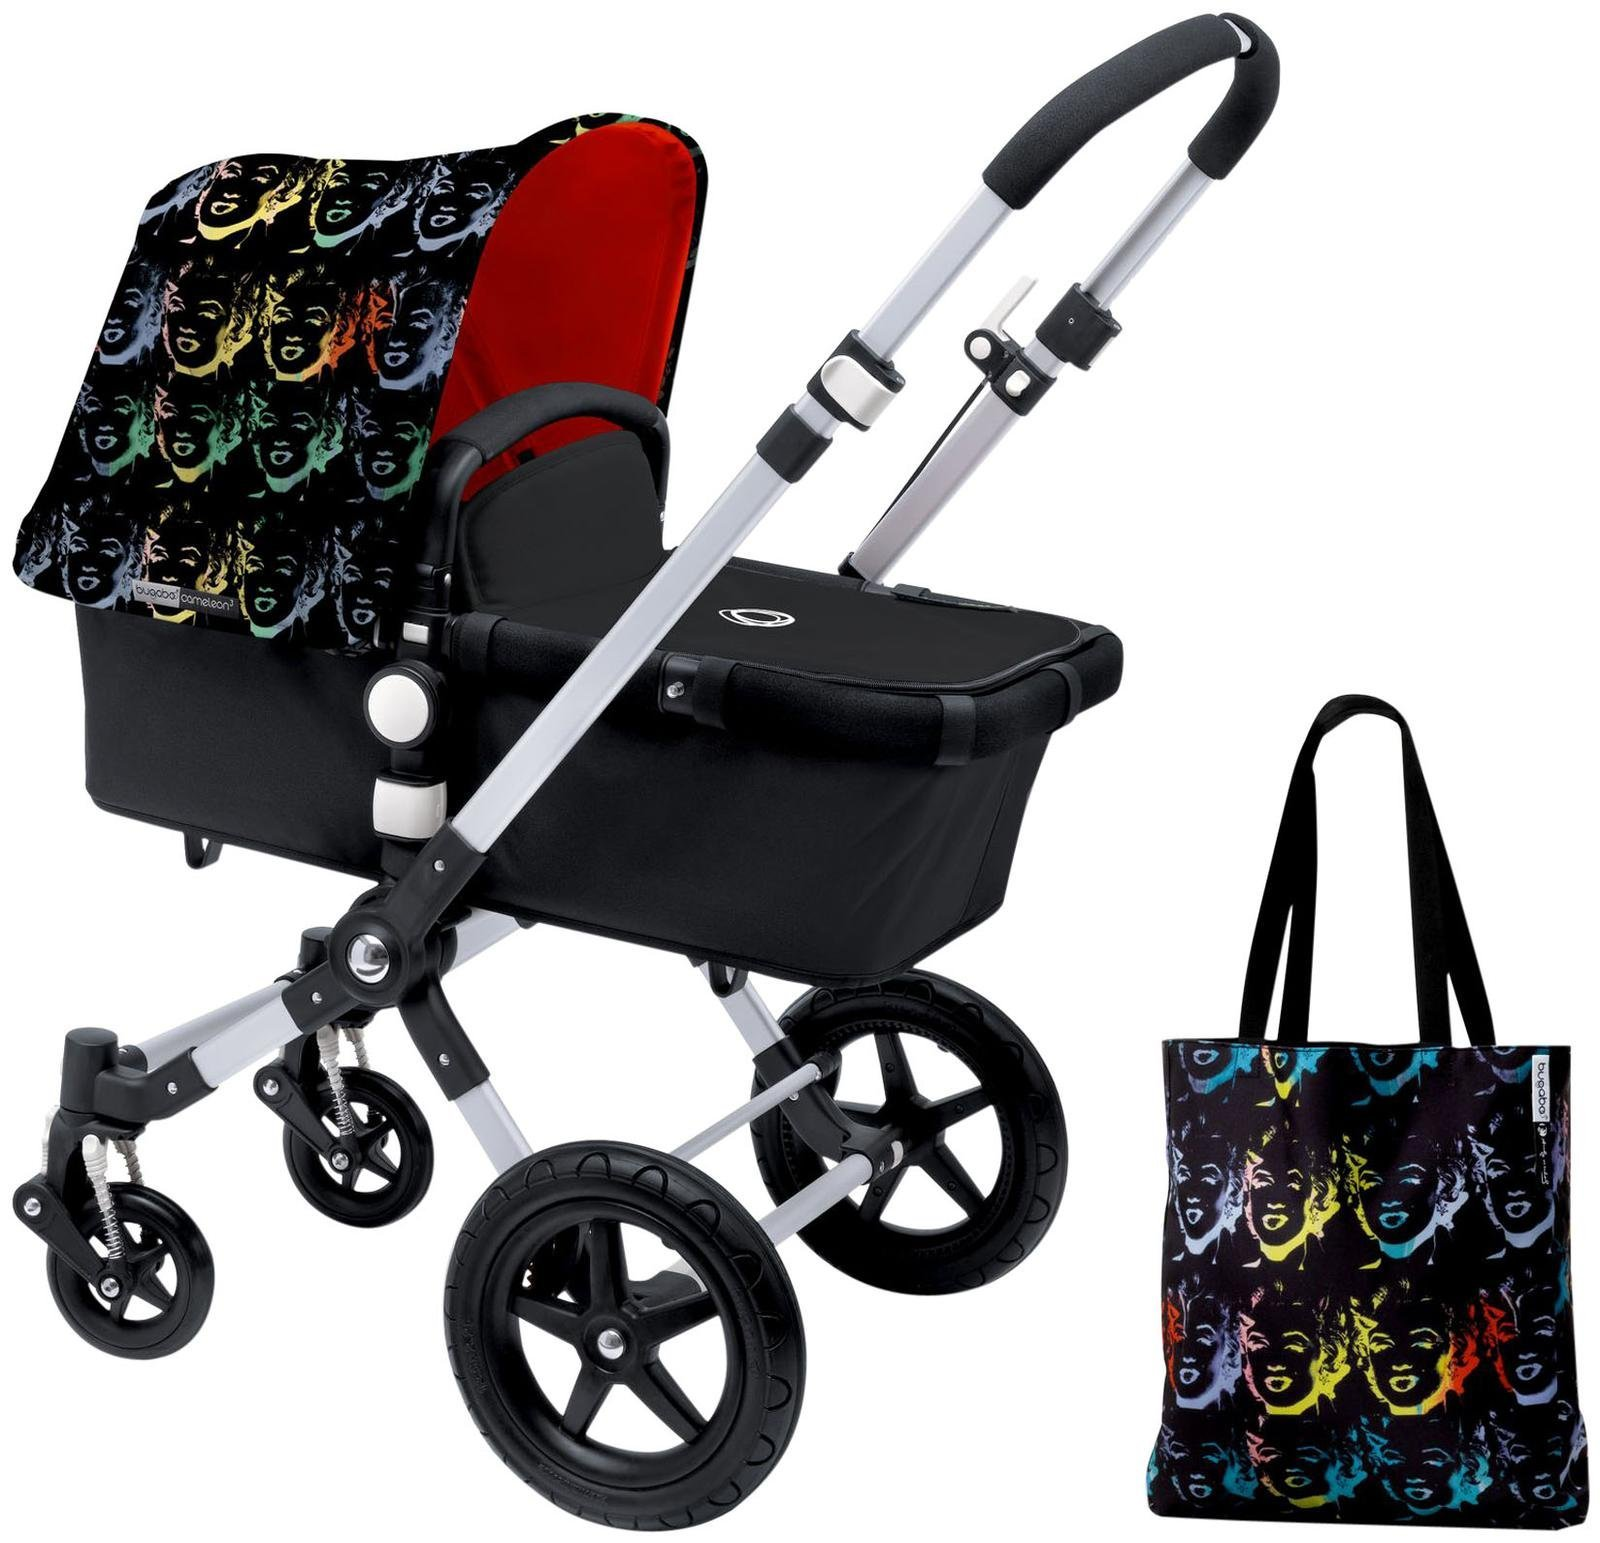 Bugaboo Cameleon3 Accessory Pack - Andy Warhol Marilyn/Orange (Special Edition)